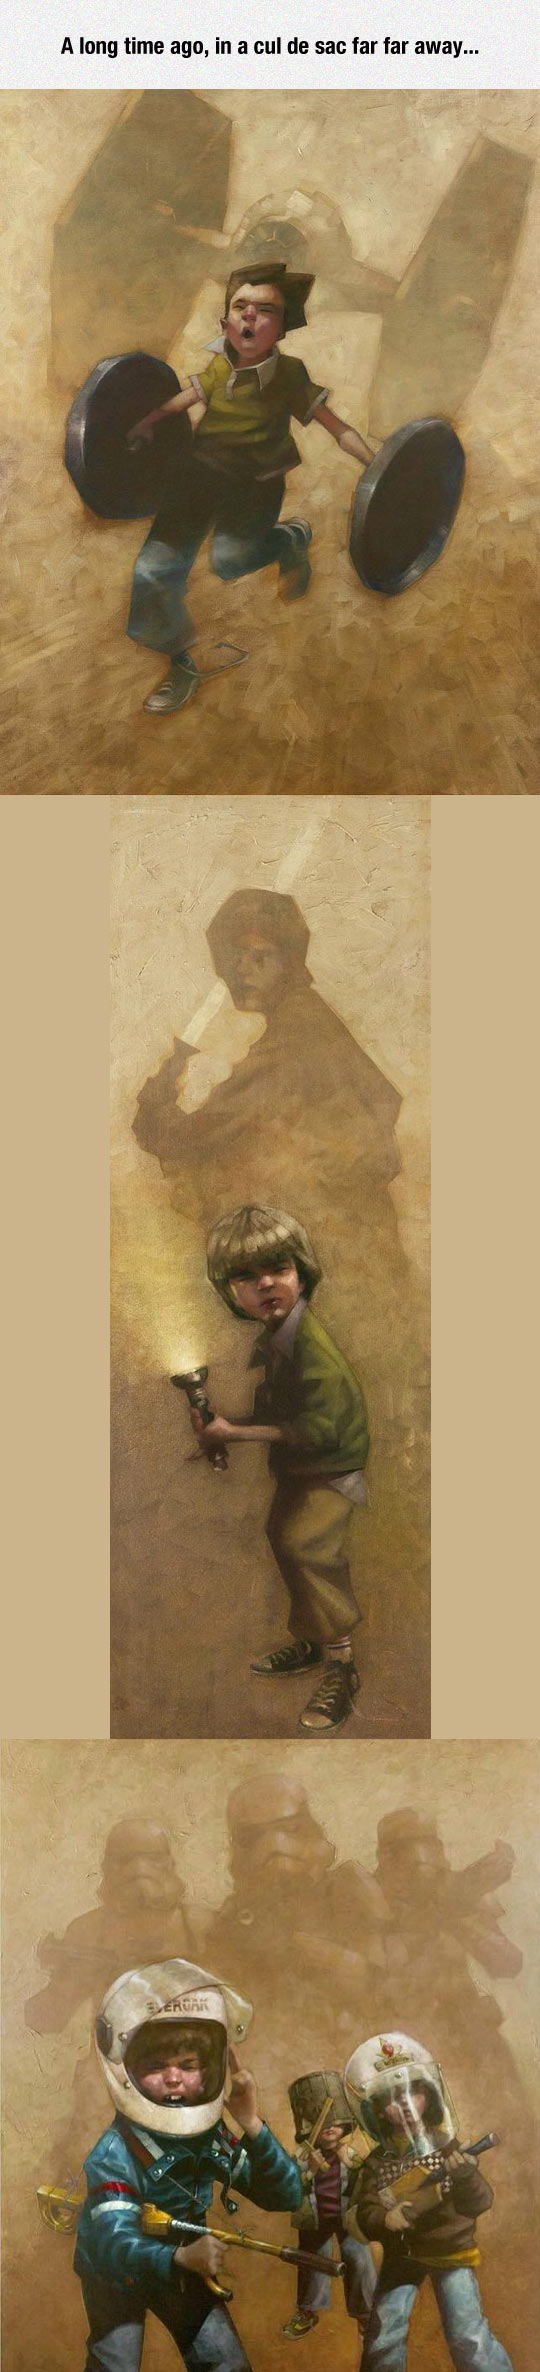 Star Wars Childhood, Really Captures The Spirit Of Imagination